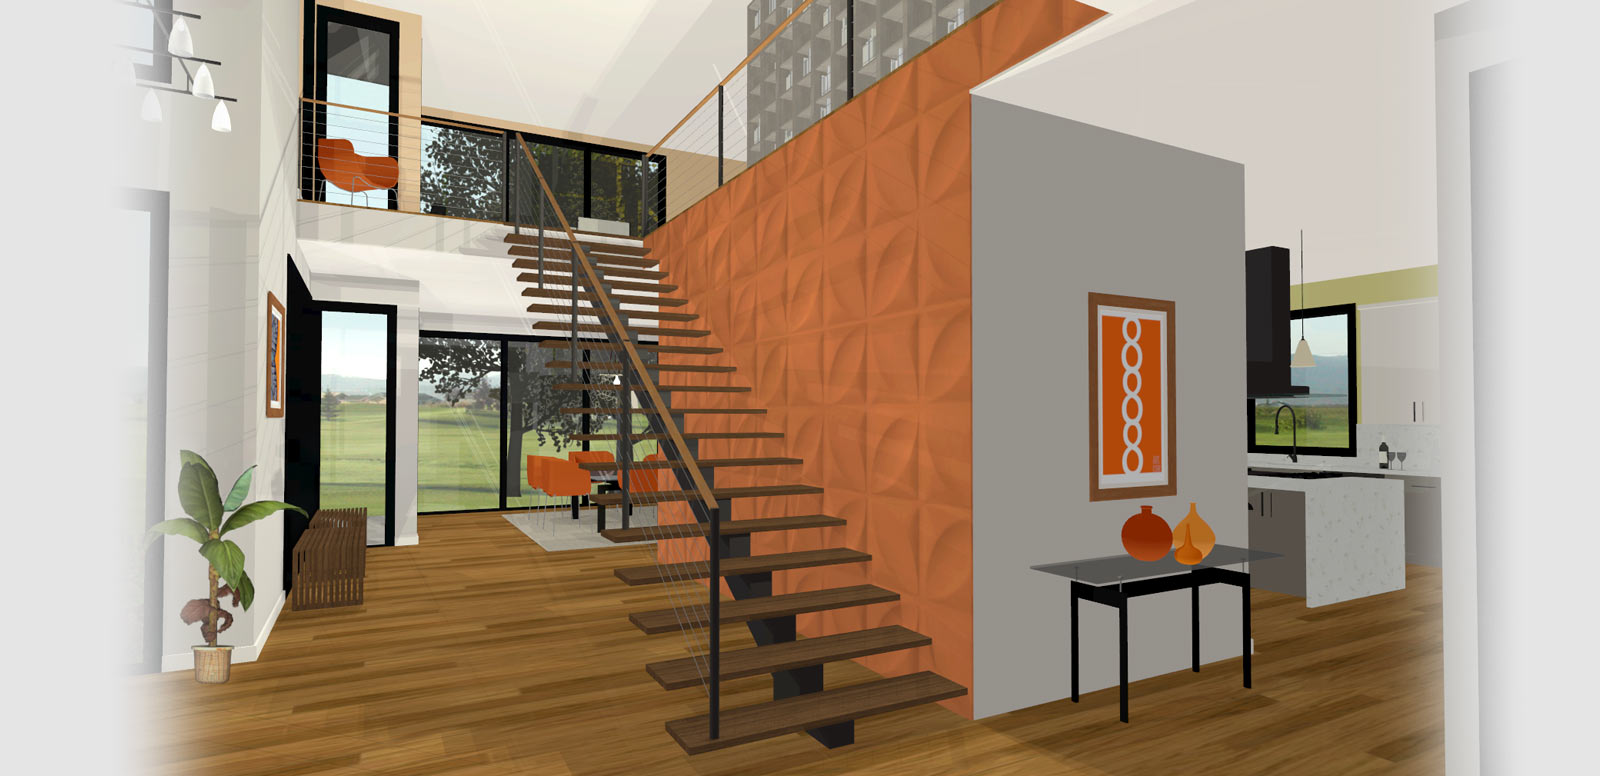 Home designer interior design software for Wood house design software